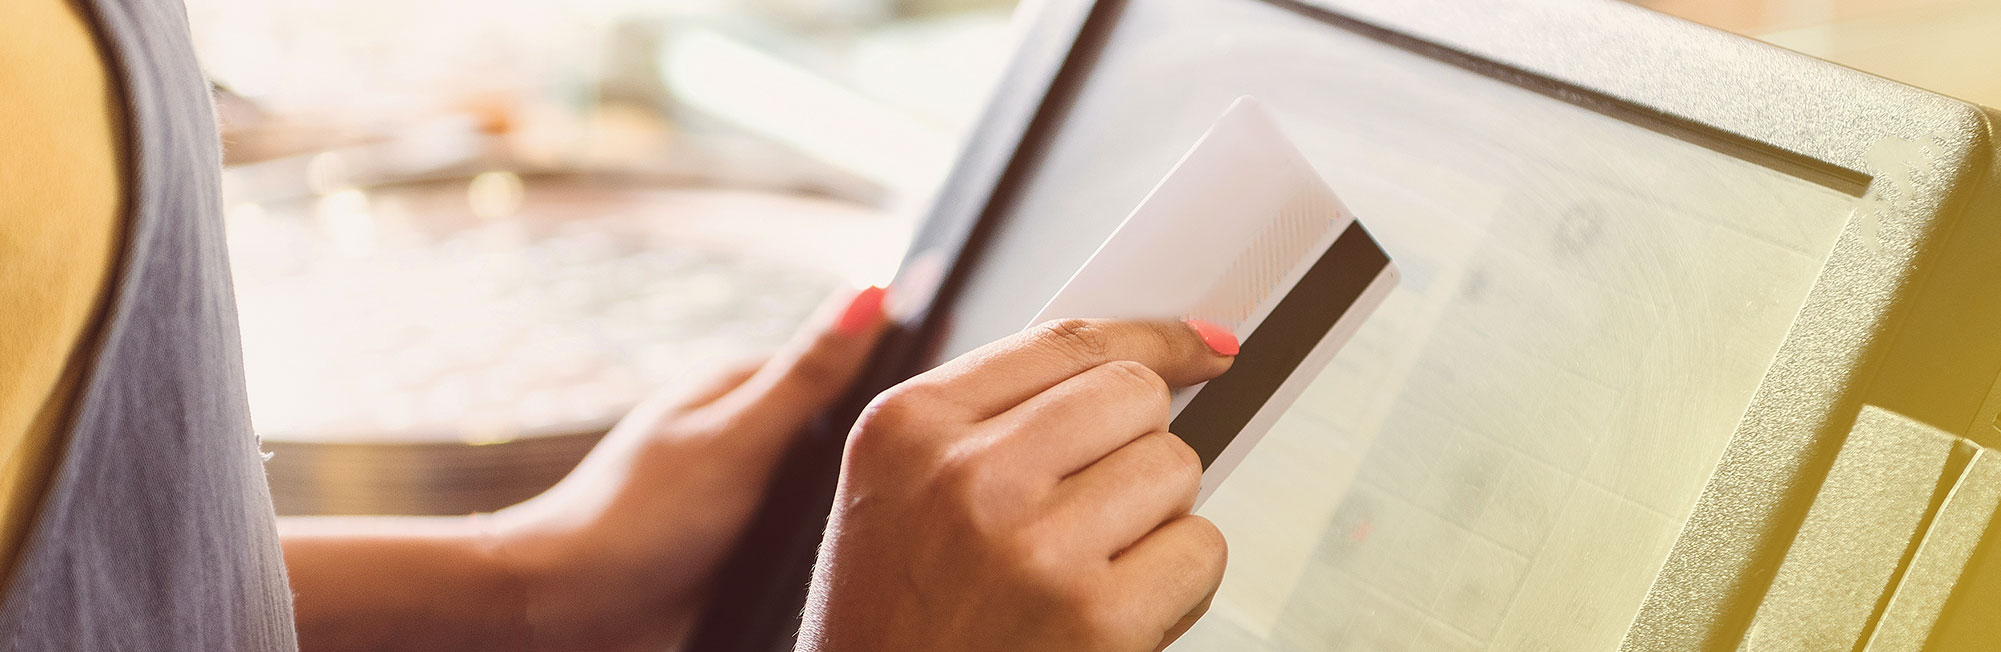 The importance of finding proper POS solutions for your business.